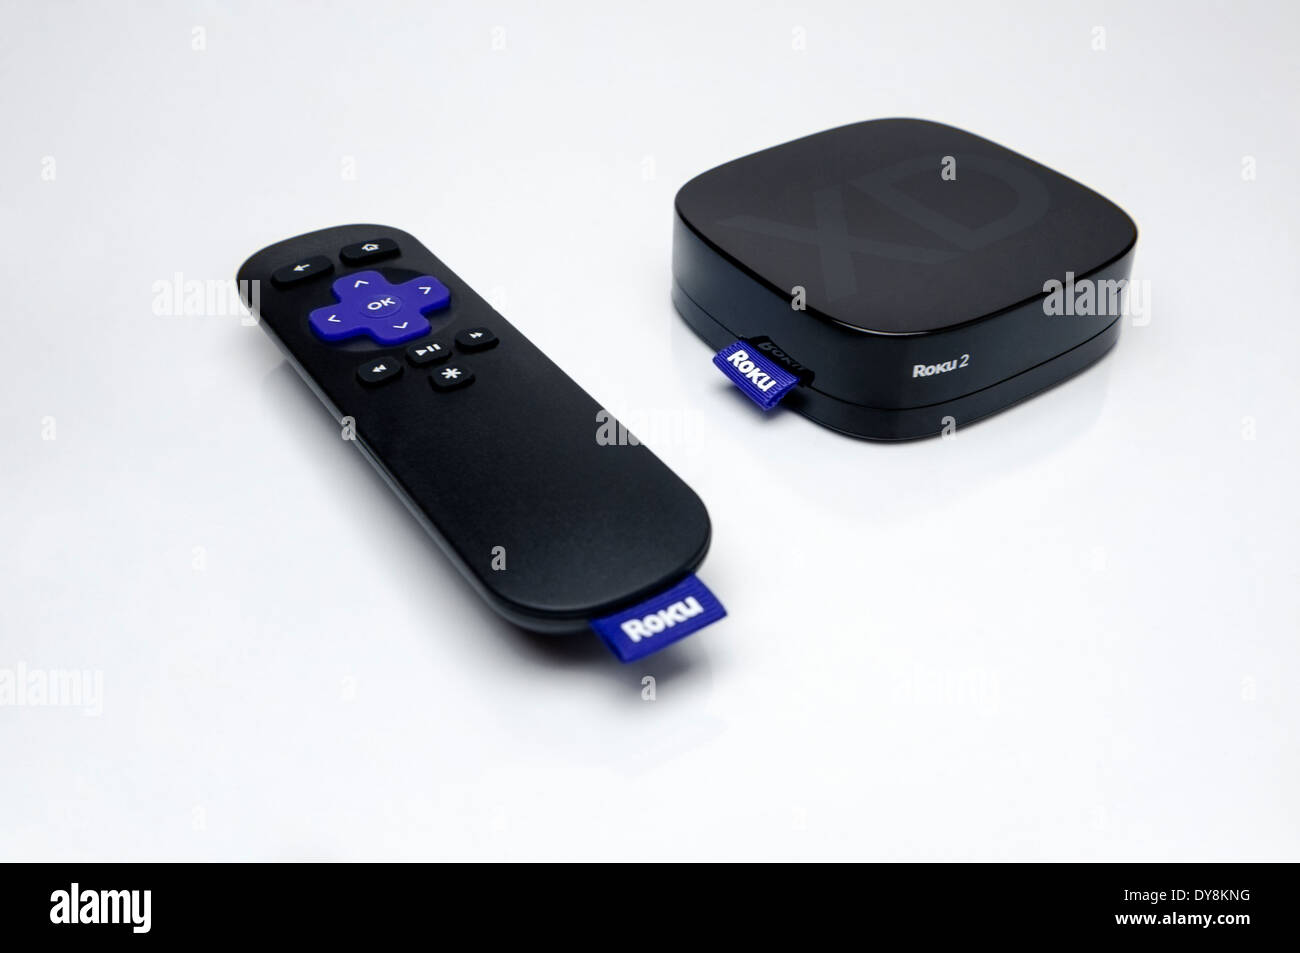 Roku 2 Streaming Player TV Digital Television Receiver with Remote Control - Stock Image